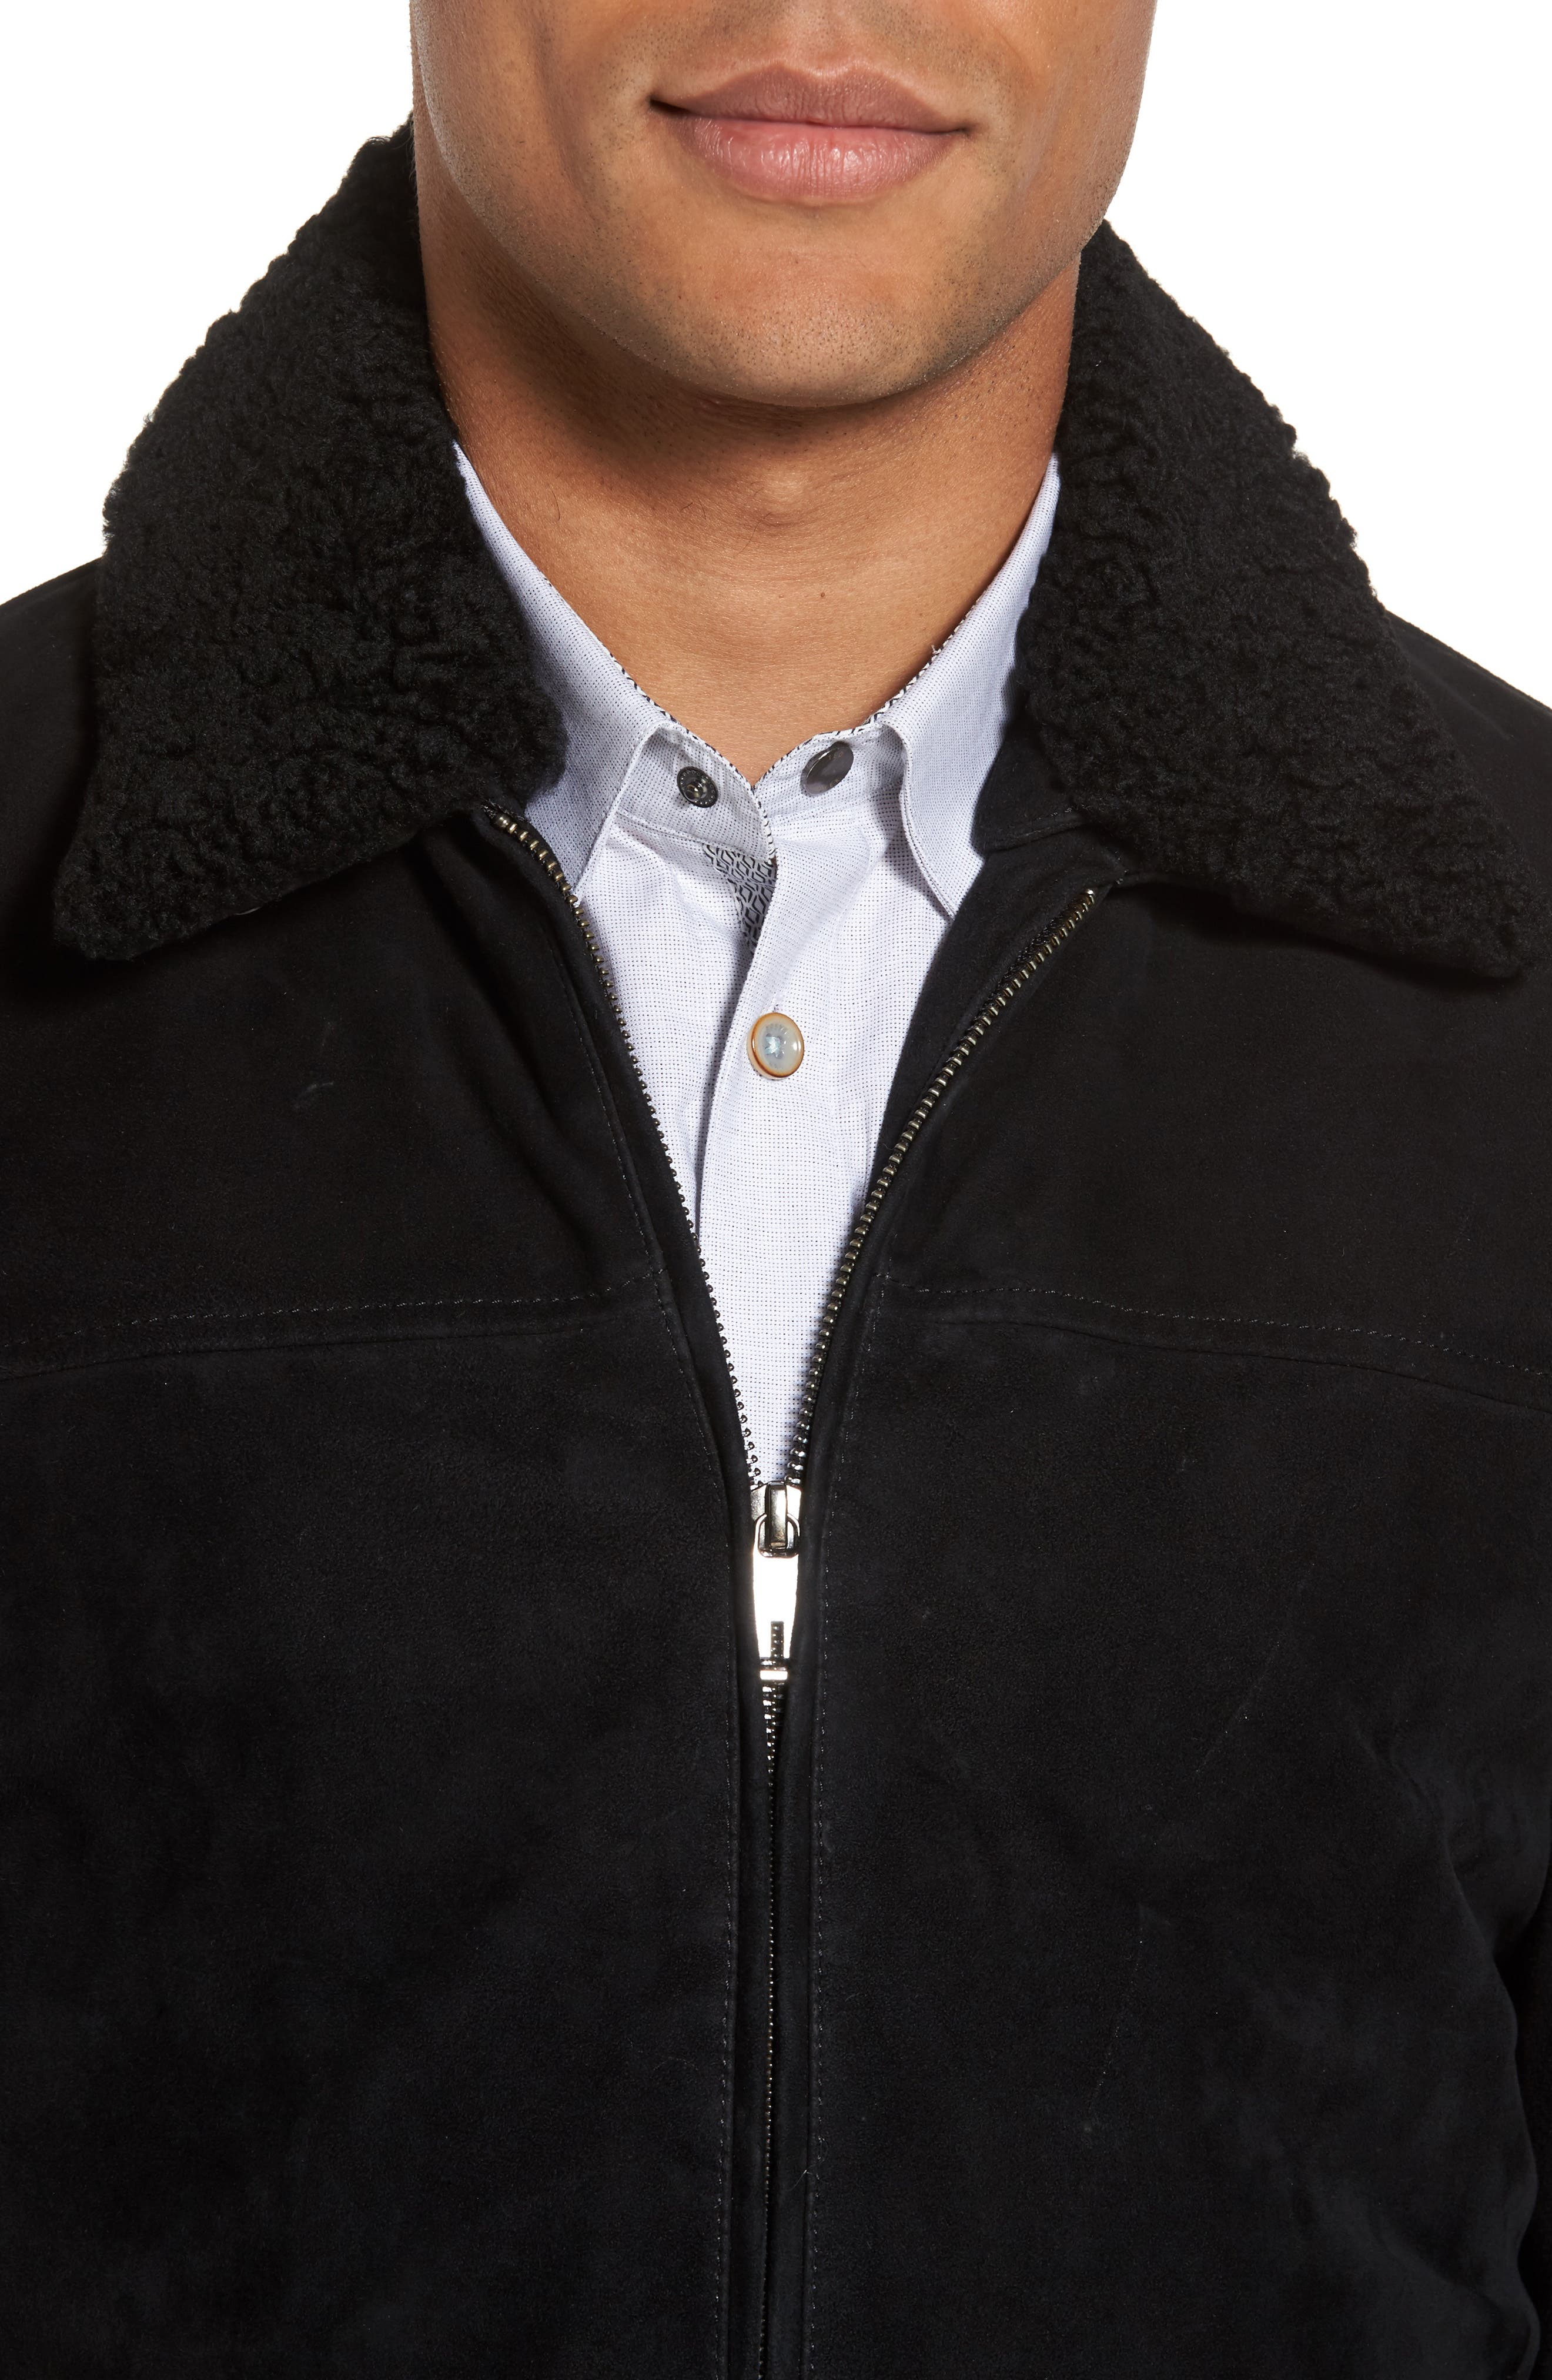 Genuine Shearling Collar Suede Jacket,                             Alternate thumbnail 4, color,                             Black